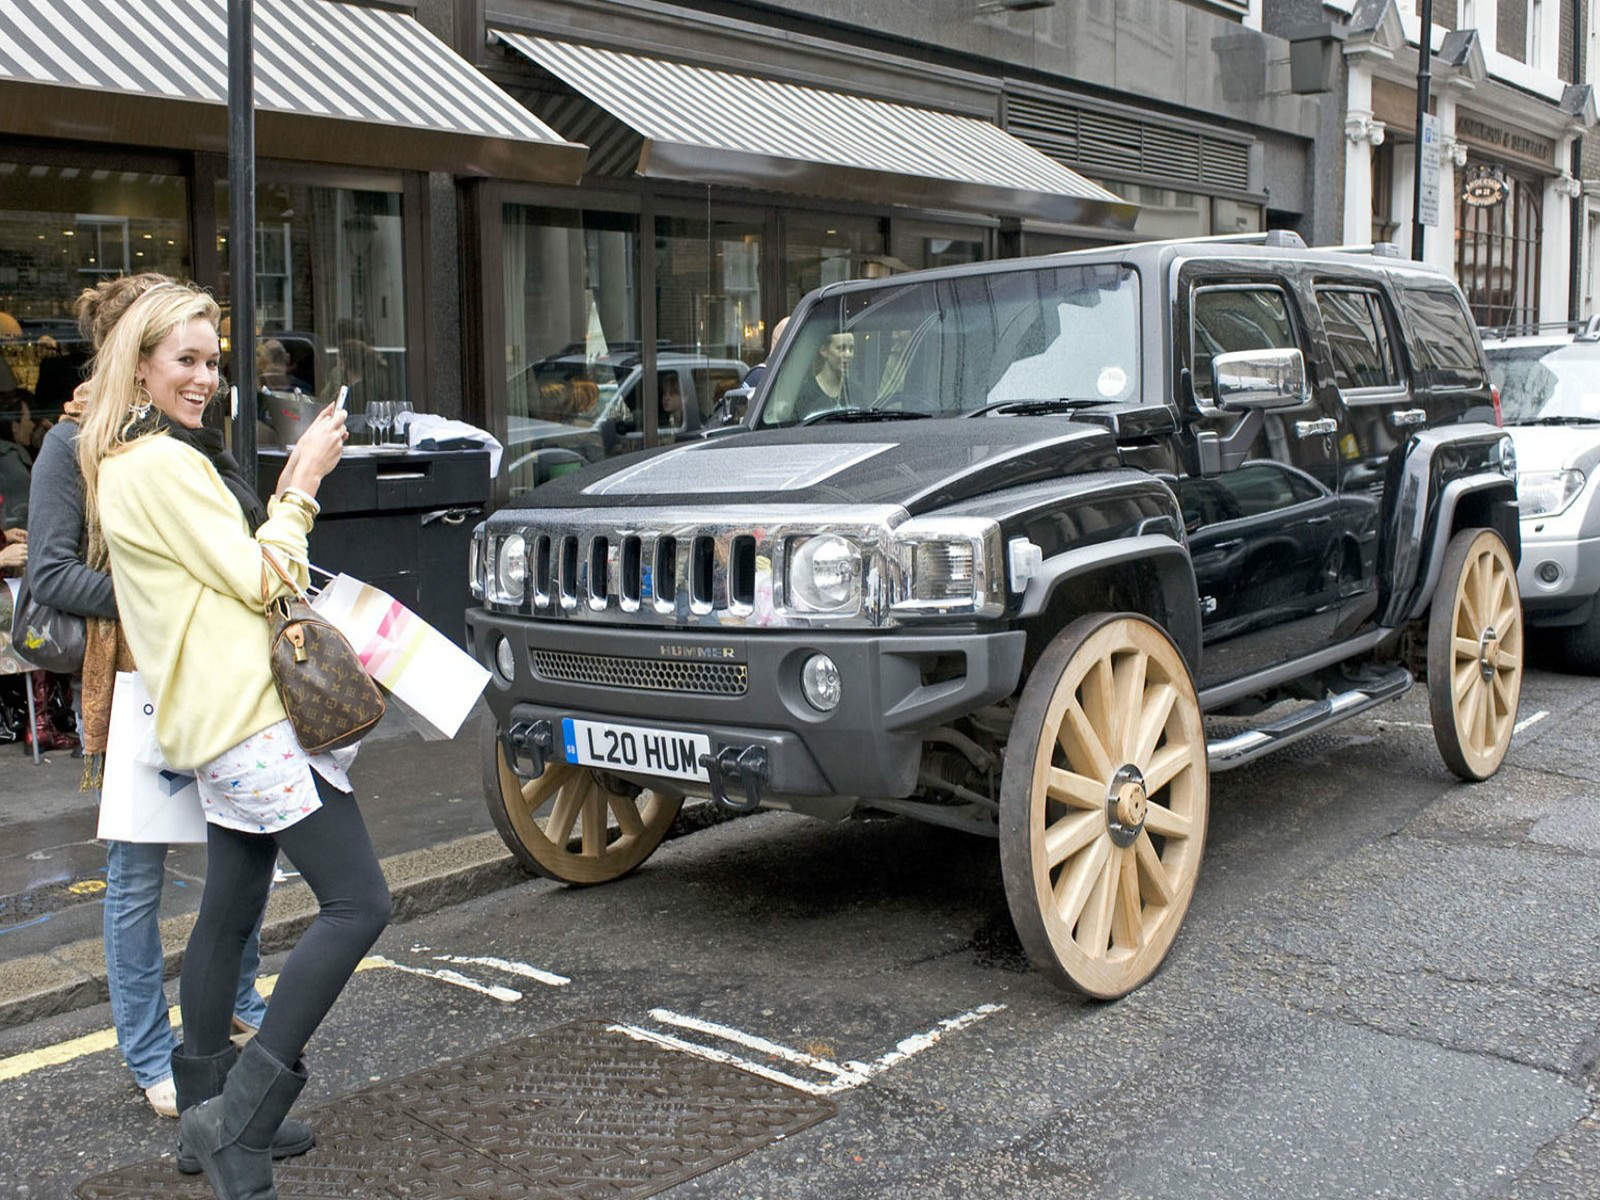 Hummer with Carriage wheels - NO Car NO Fun! Muscle Cars and Power ...